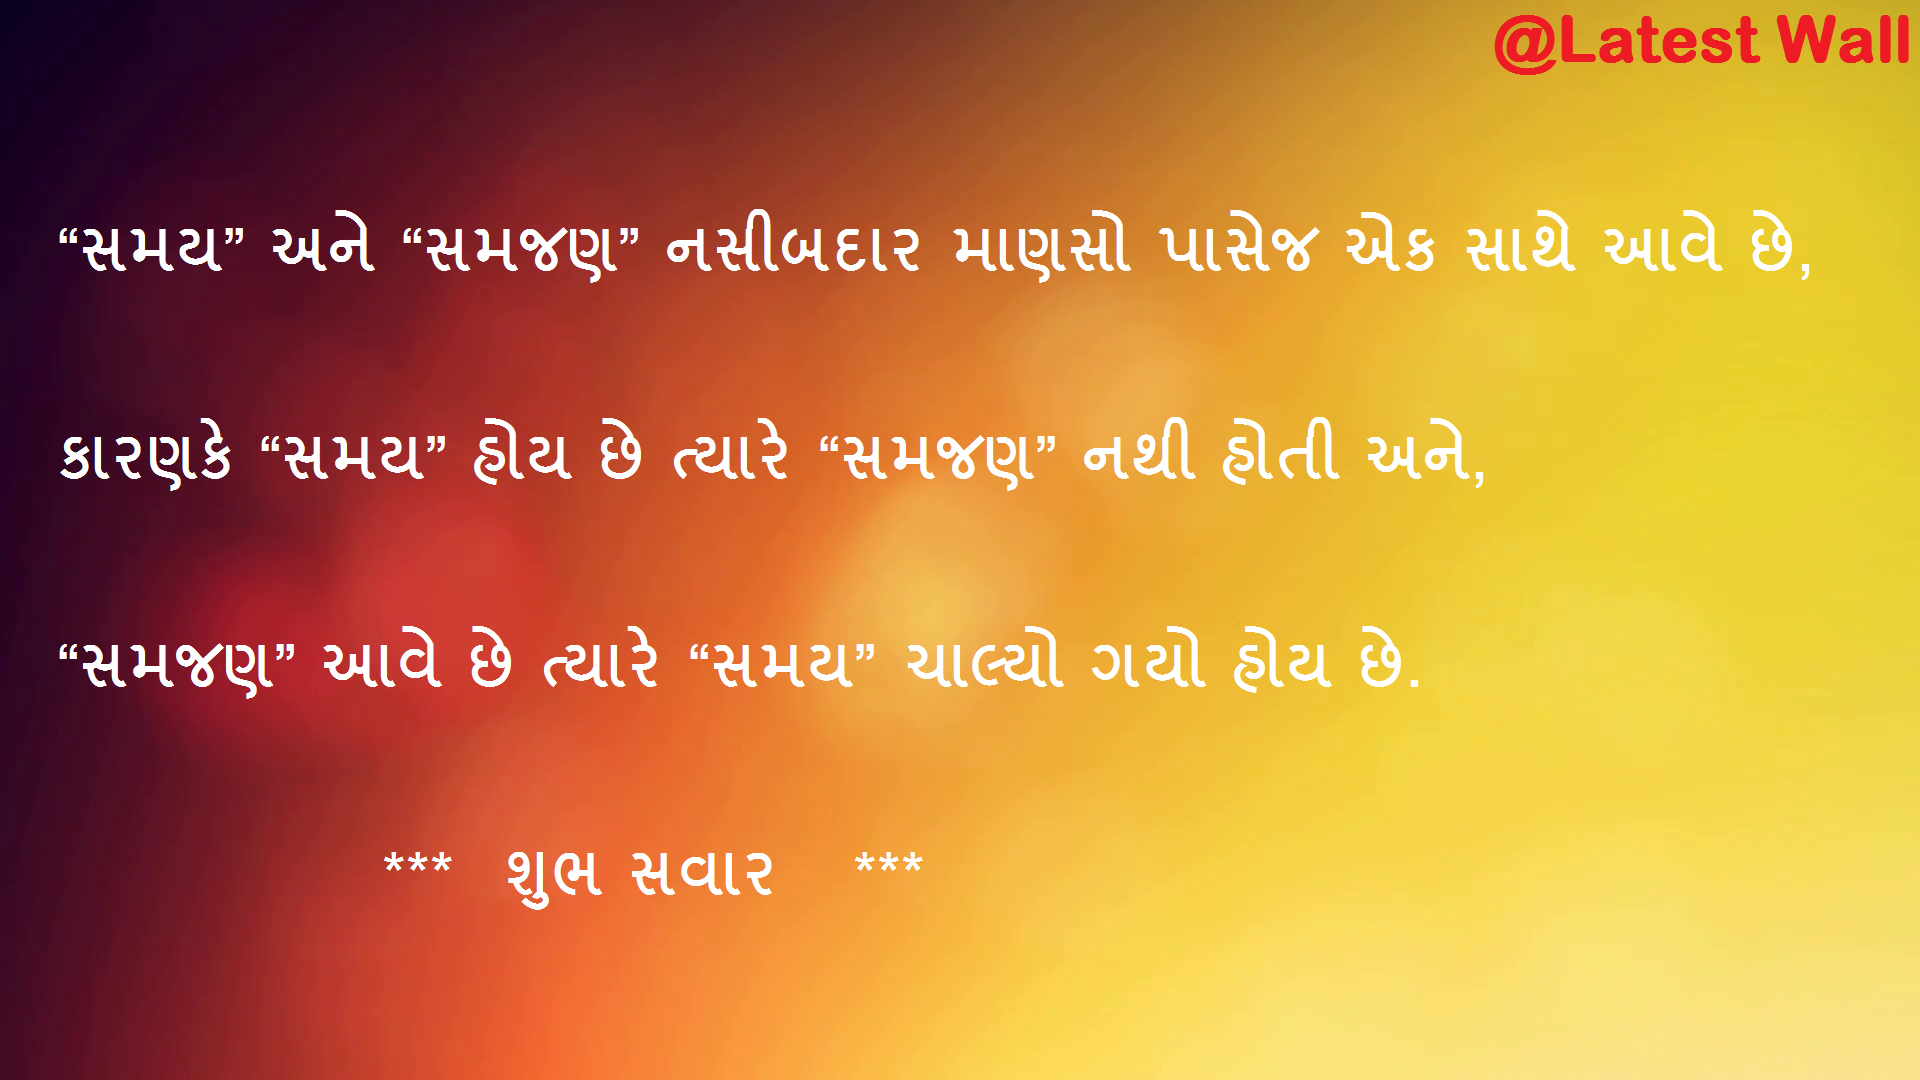 Samay and samjan gujarati suvichar